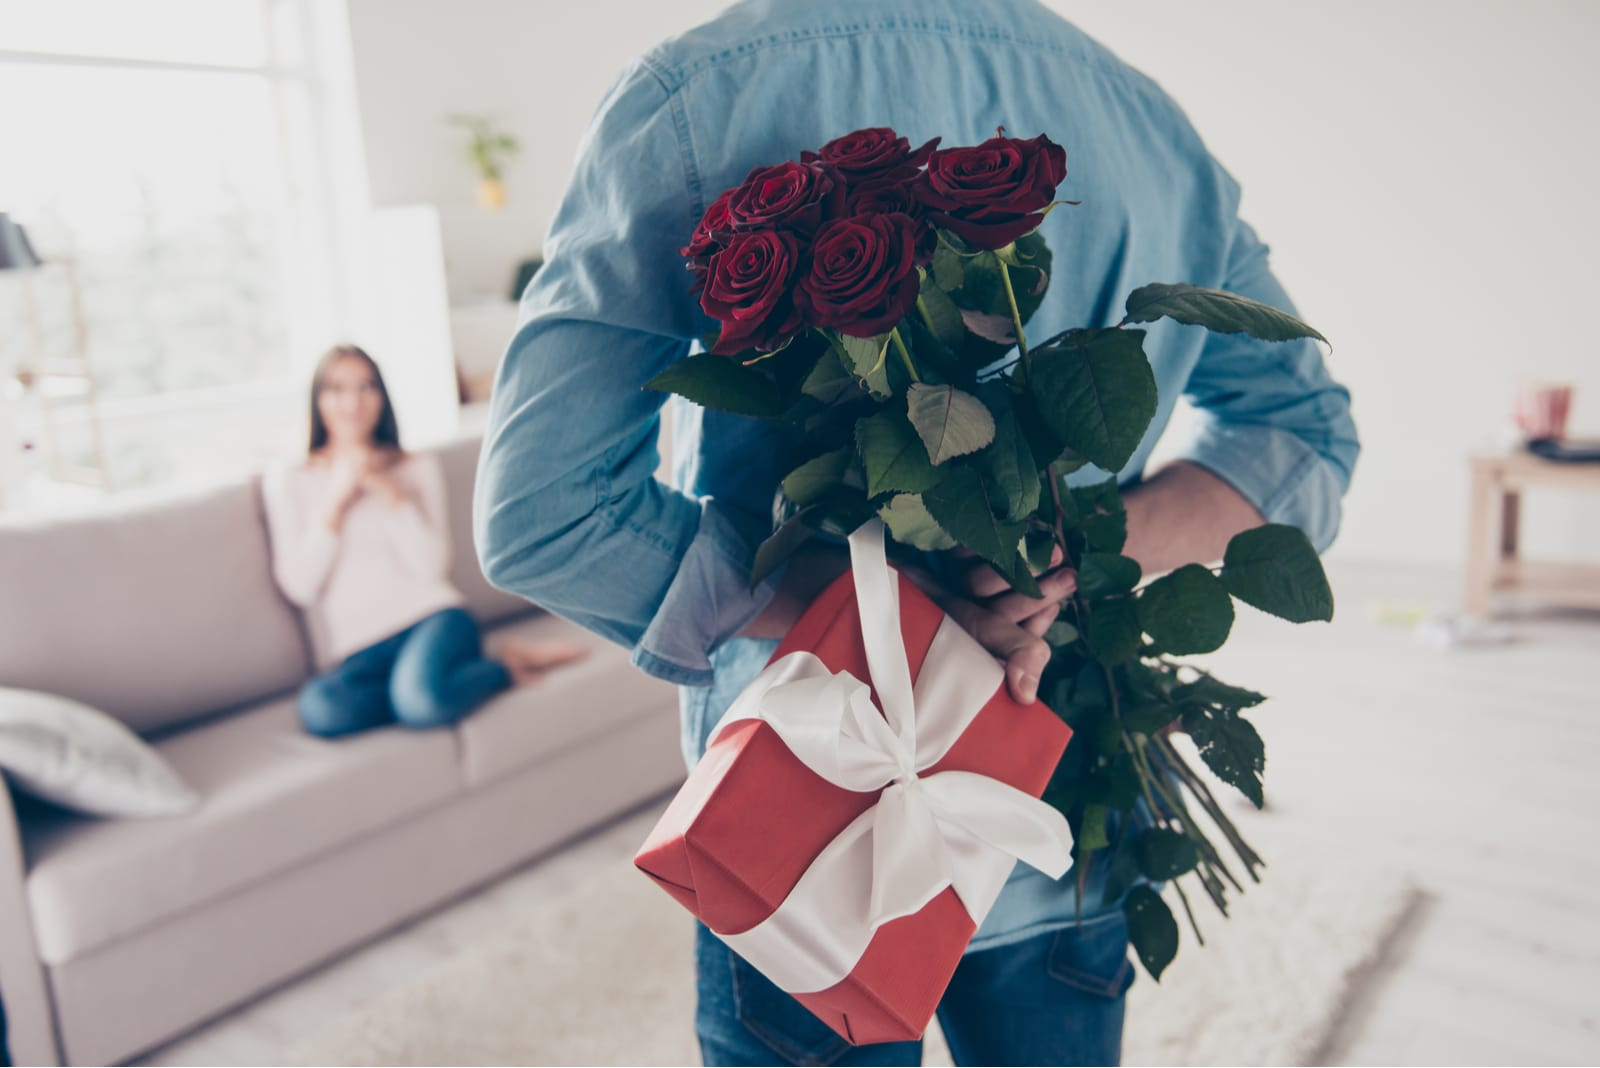 man surprising woman with flowers and gift